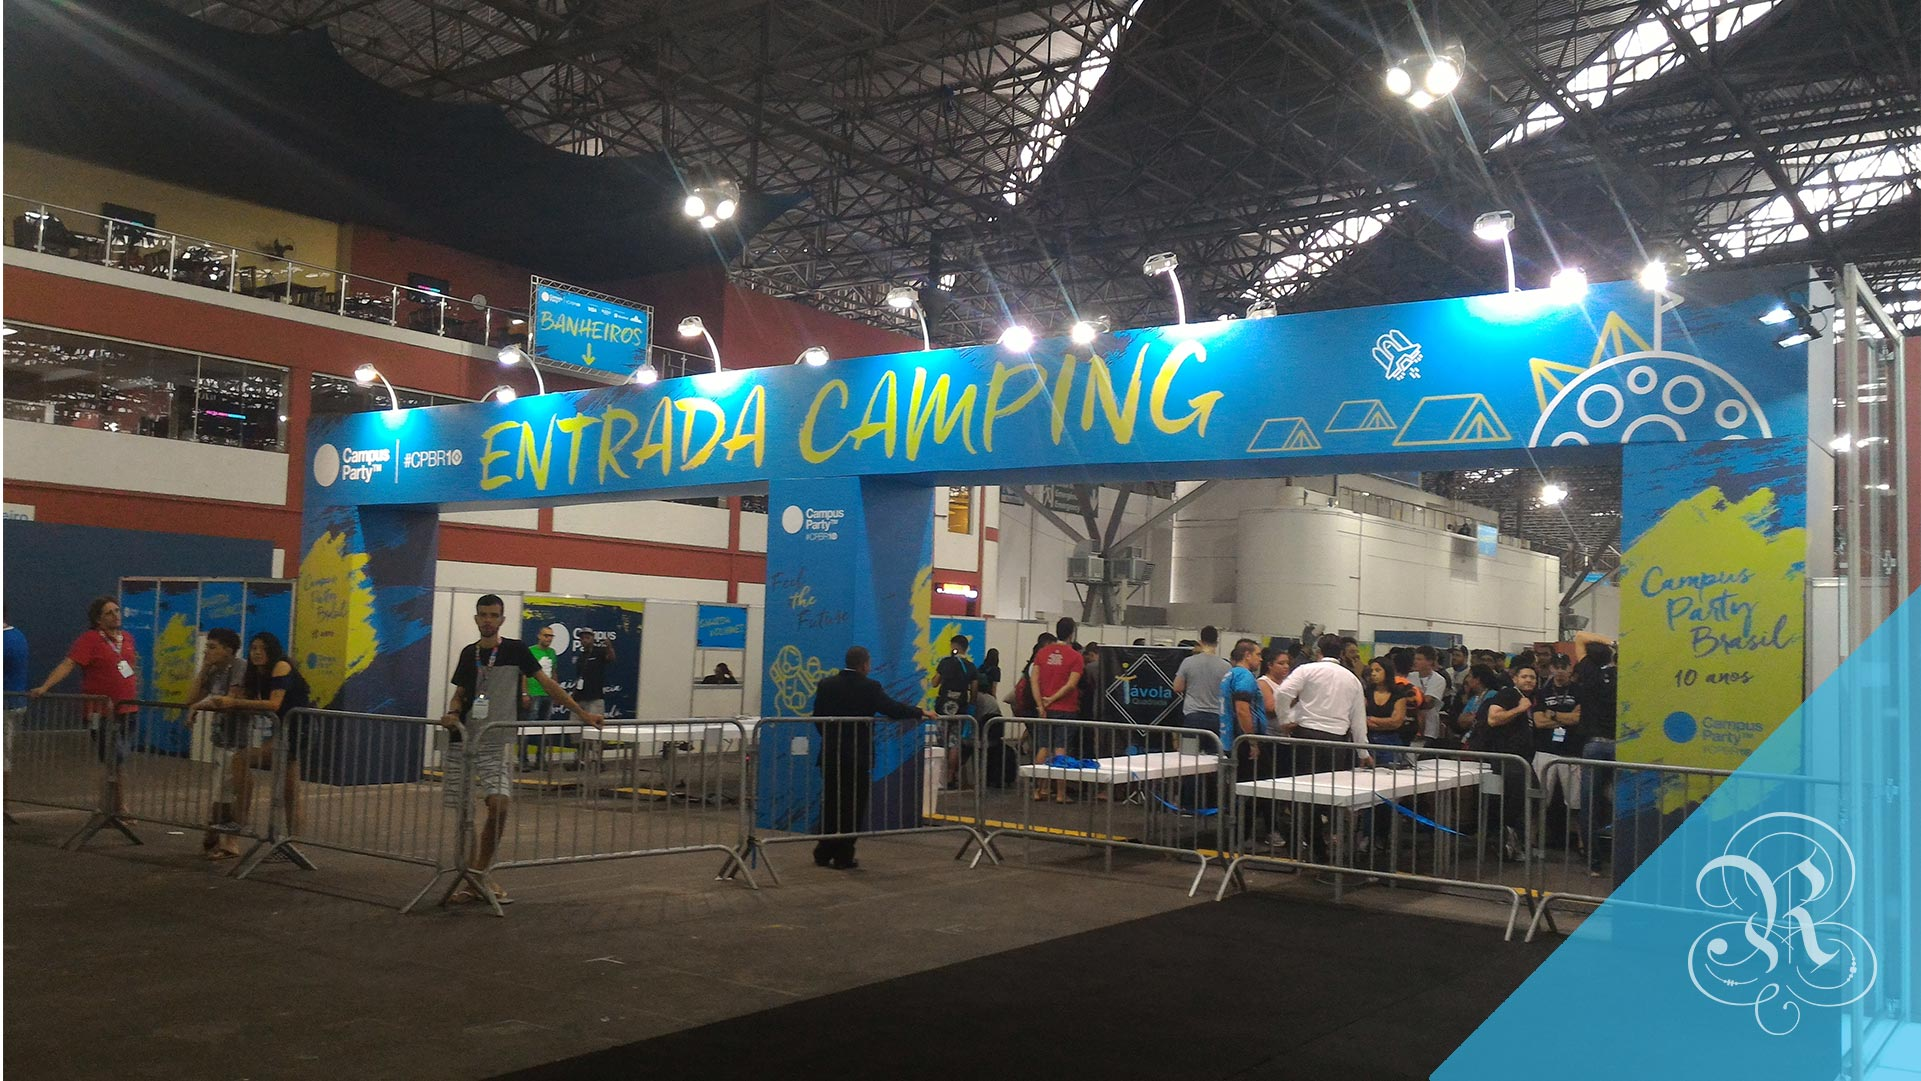 Primeiro dia na Campus Party 2017